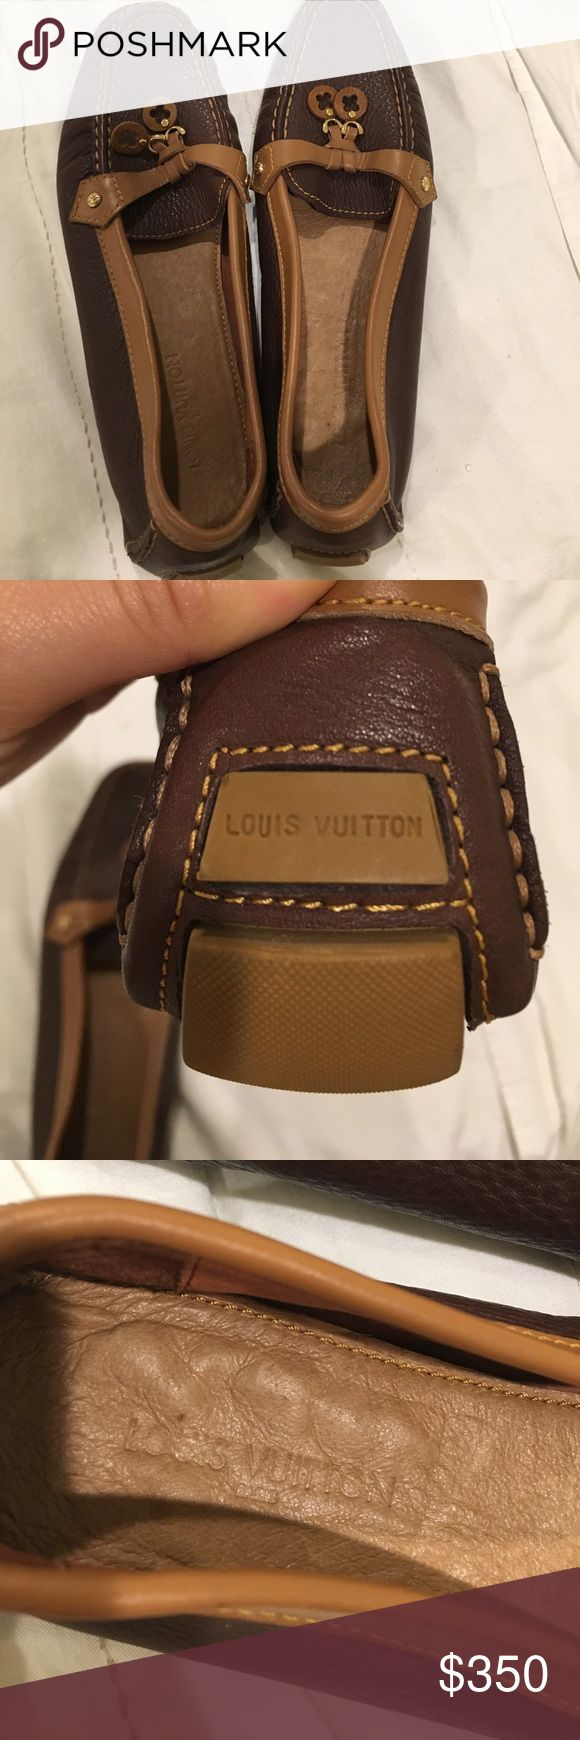 Louis Vuitton Loafers Brand new AUTHENTIC Louis Vuitton Loafers Louis Vuitton Shoes Flats & Loafers